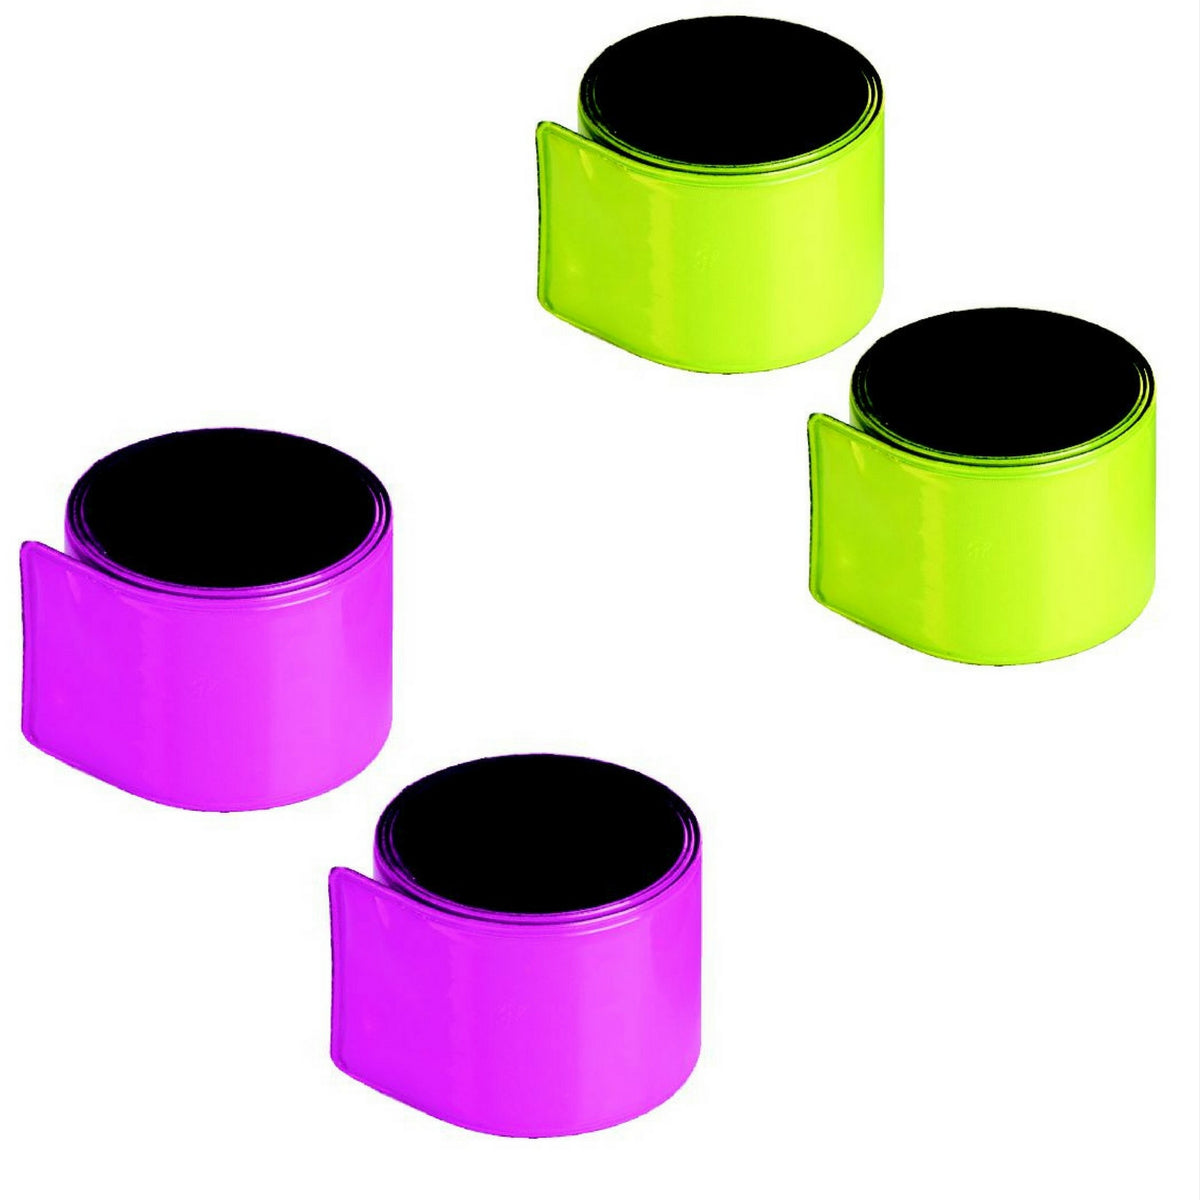 Medalist Reflective Snap Bands 1 Pair